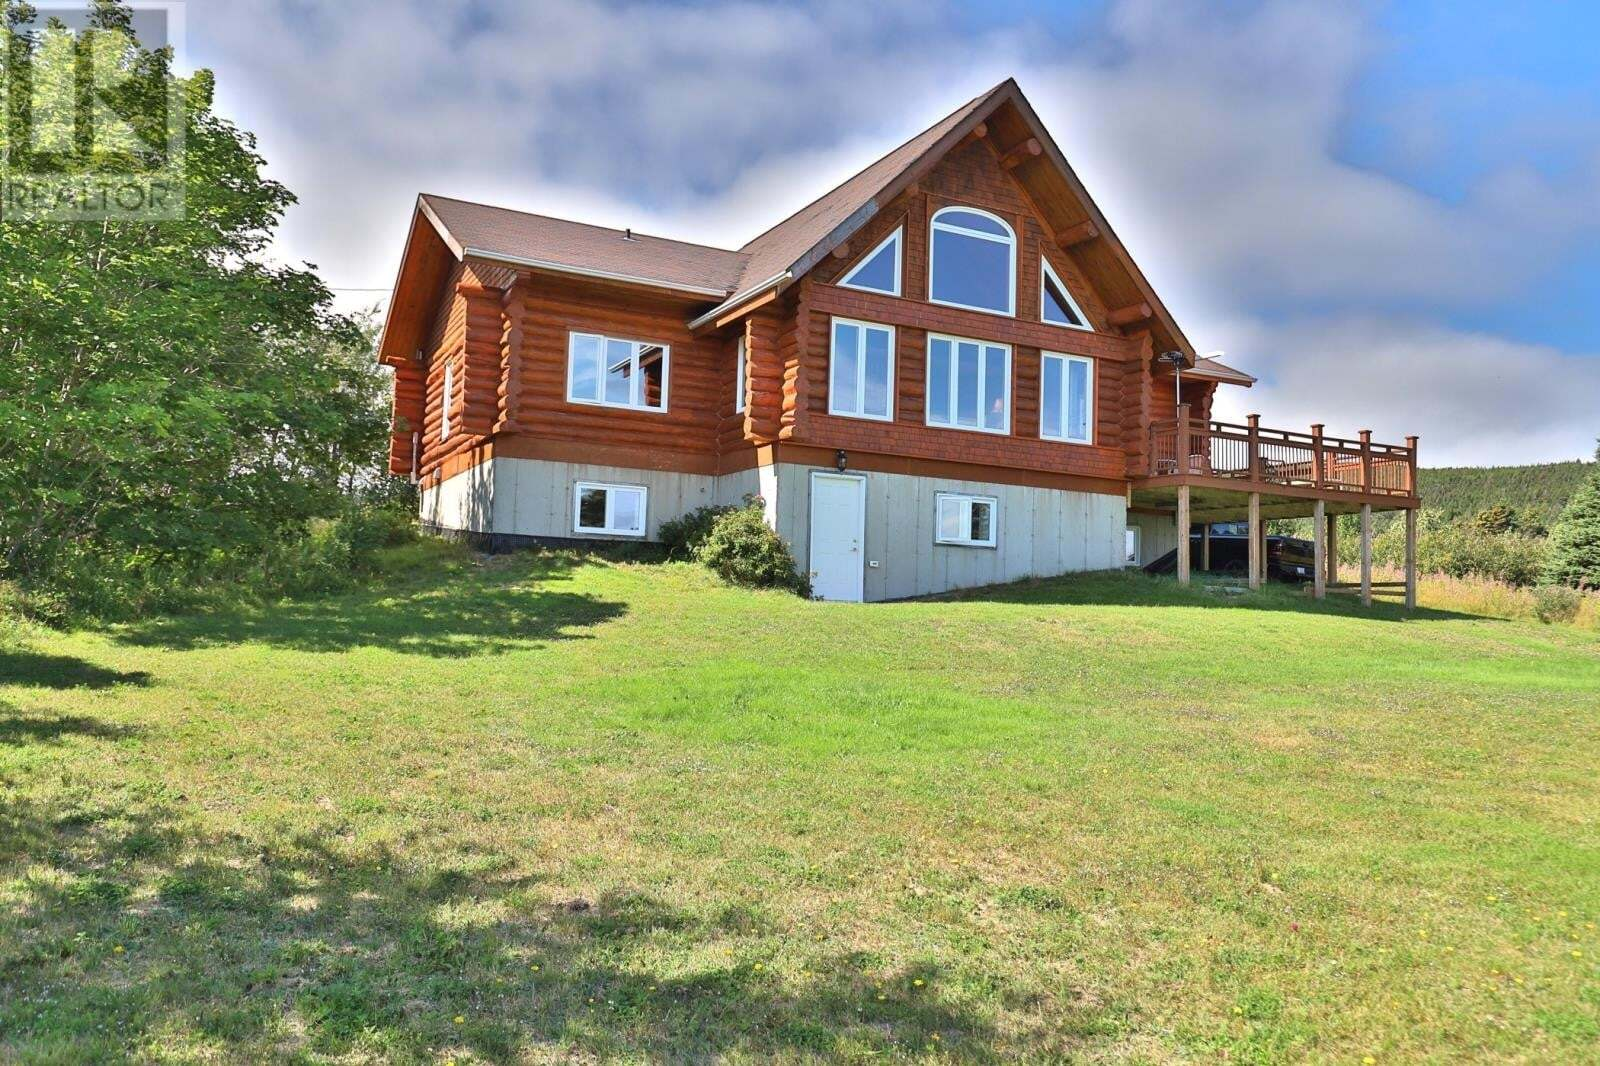 House for sale at 820 Main Rd Pouch Cove Newfoundland - MLS: 1202667